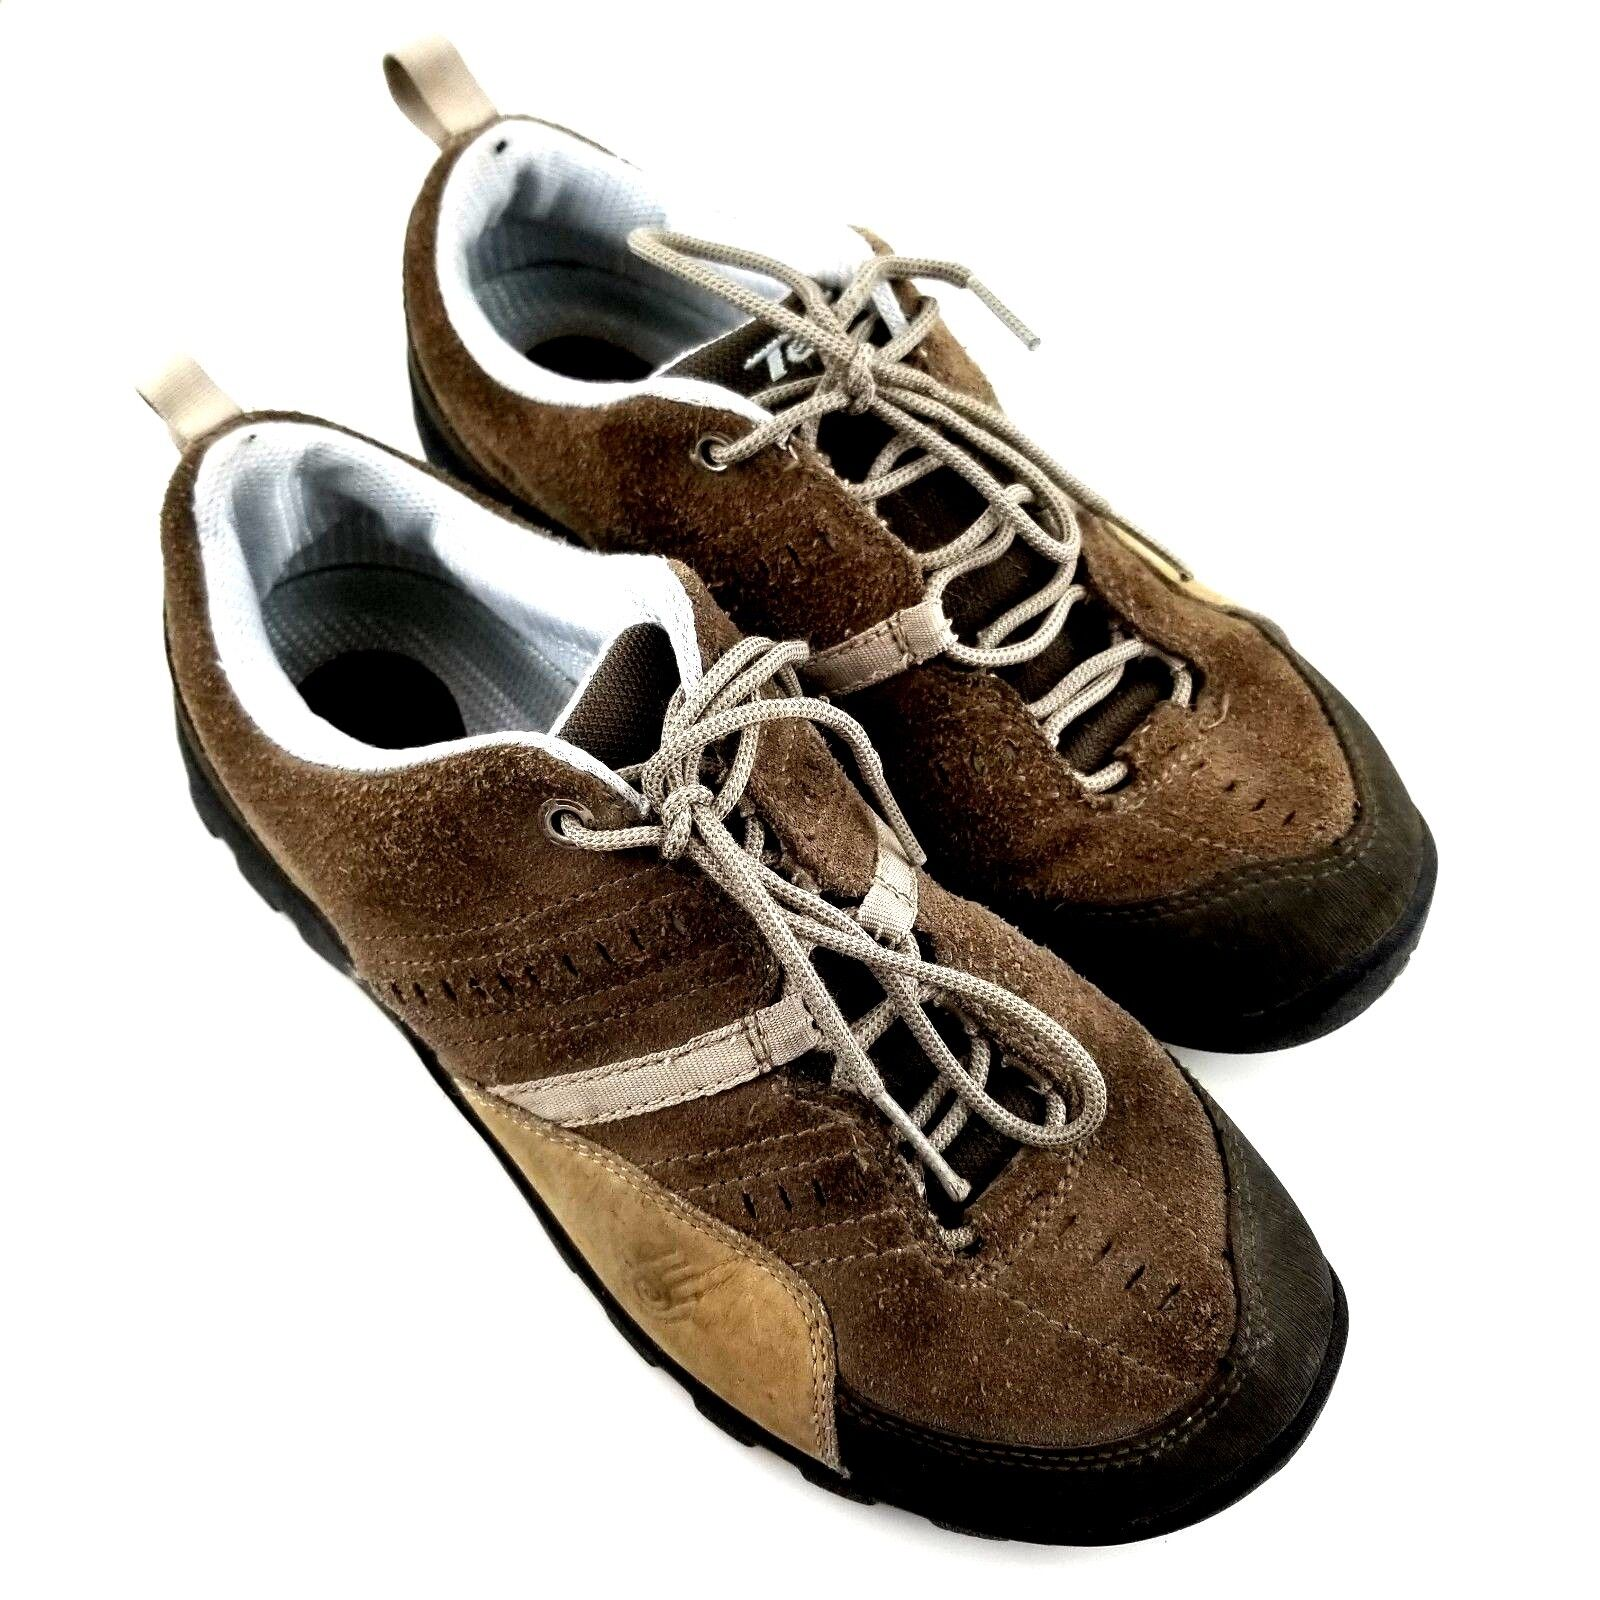 Teva Womens Size US 10 Brown Leather Trail shoes Hiking 6558